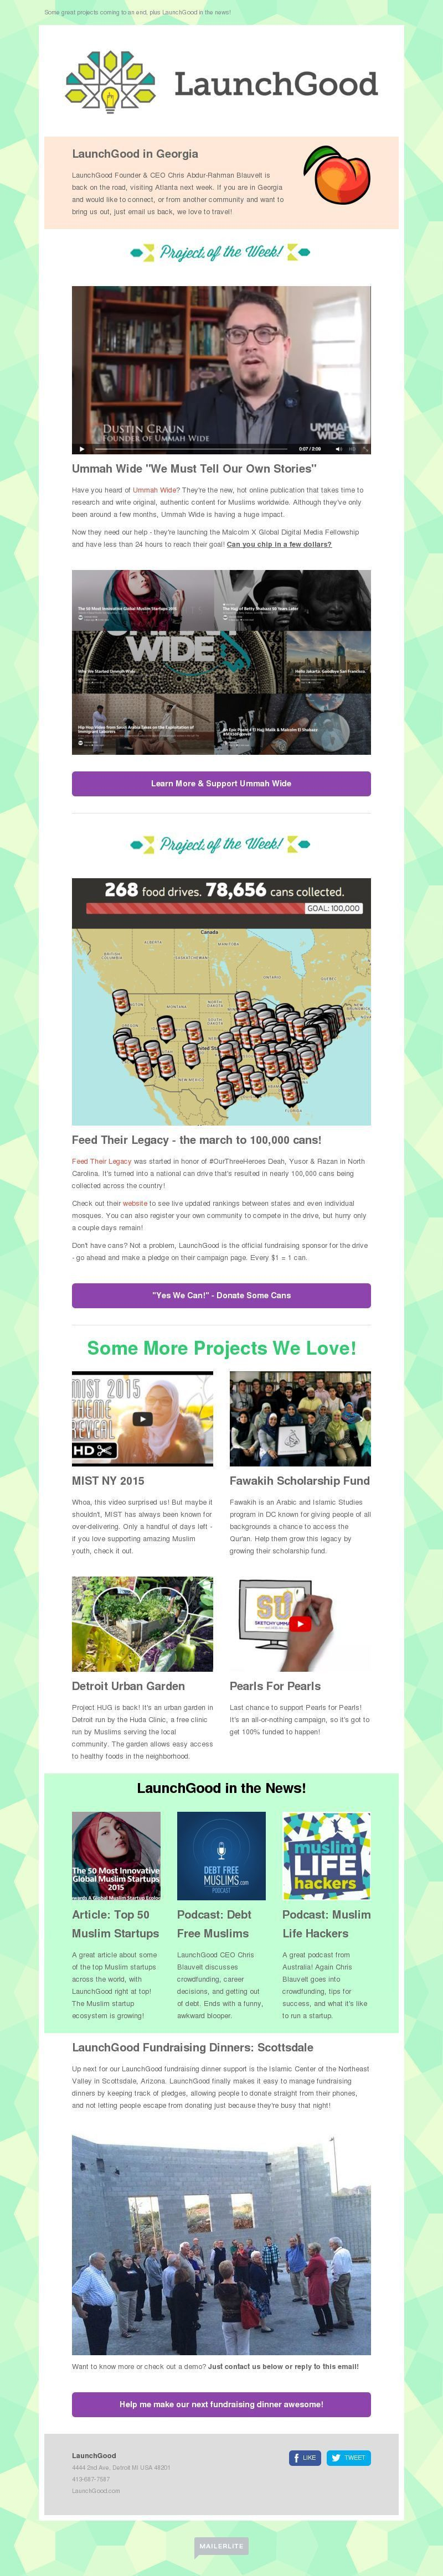 Nonprofit Newsletter Design Gallery and Examples | MailerLite